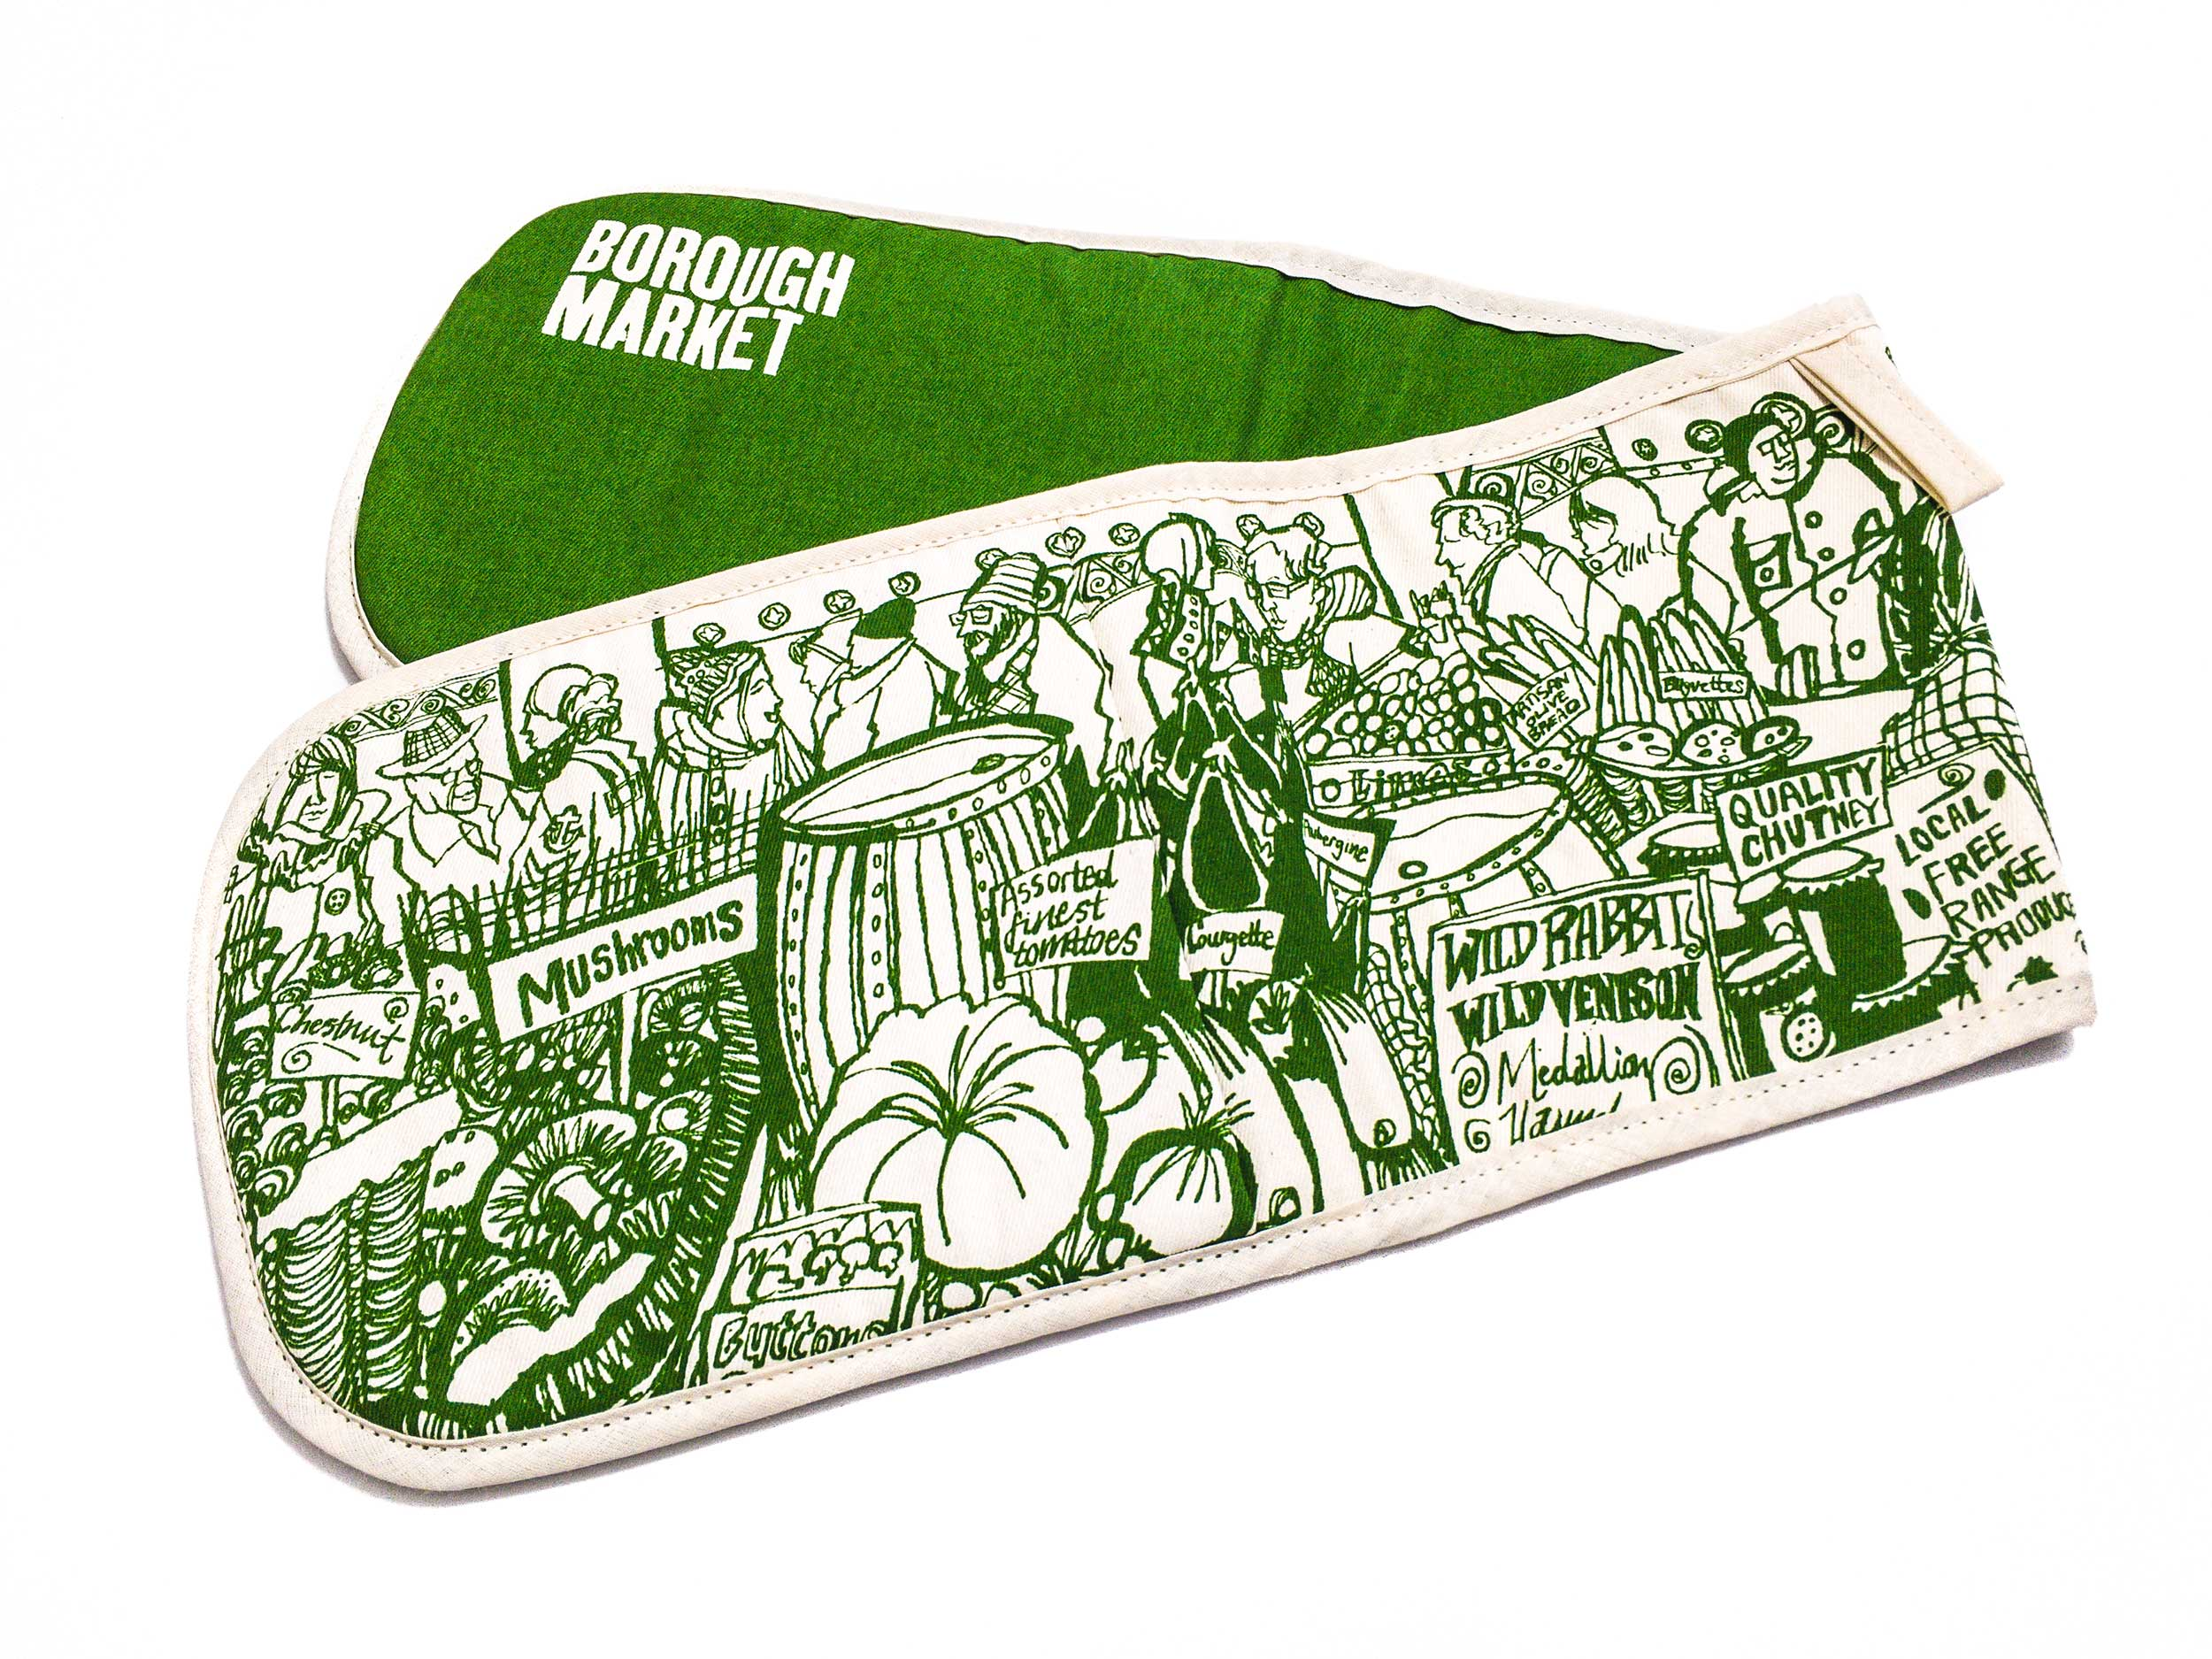 Borough Market merchandise by James Oses, image 5